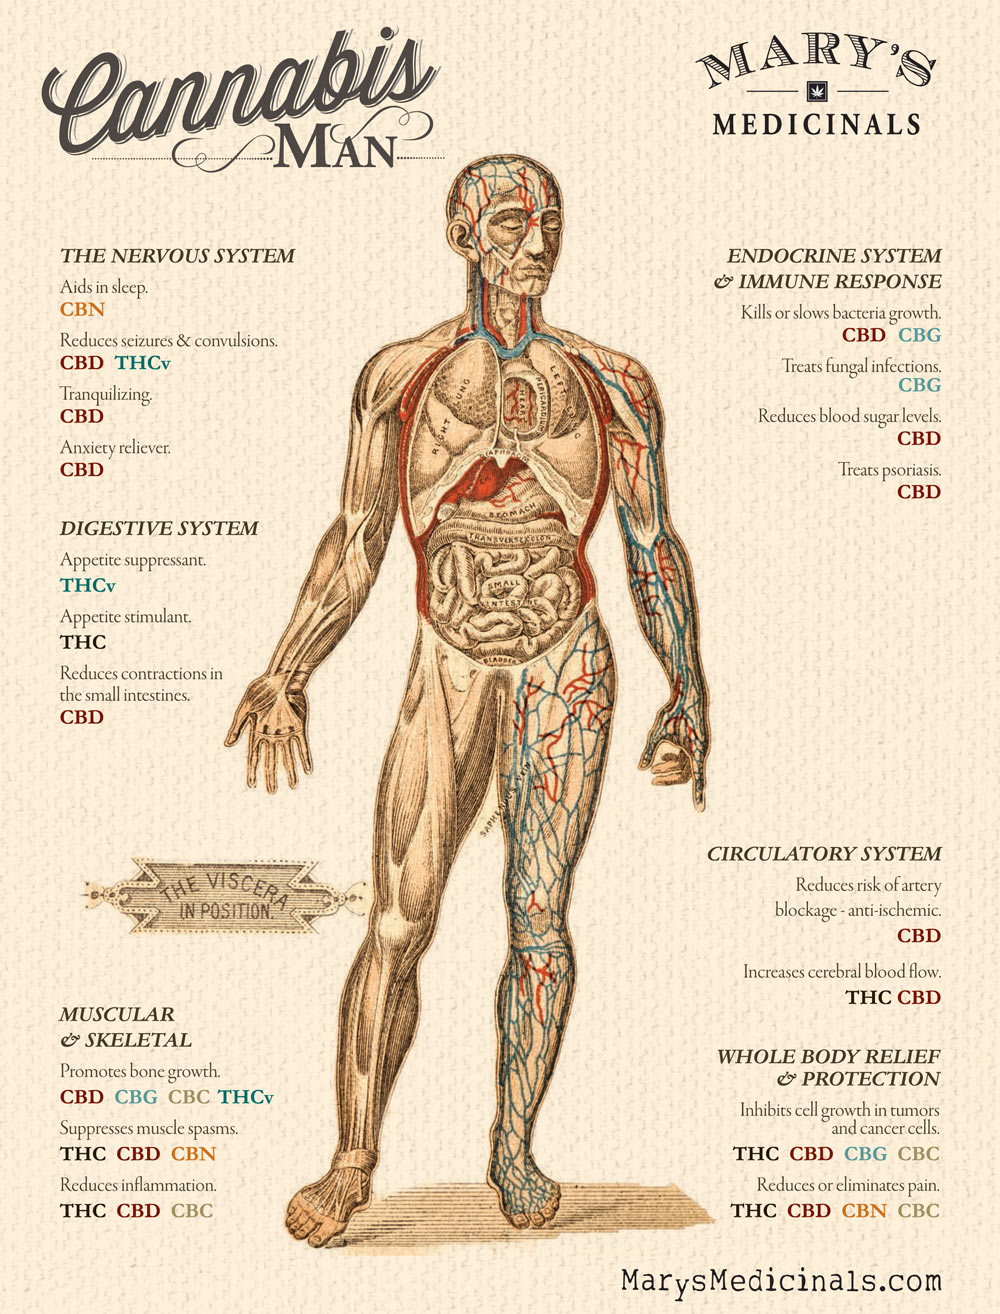 Poster from www.MarysMedicinals.com